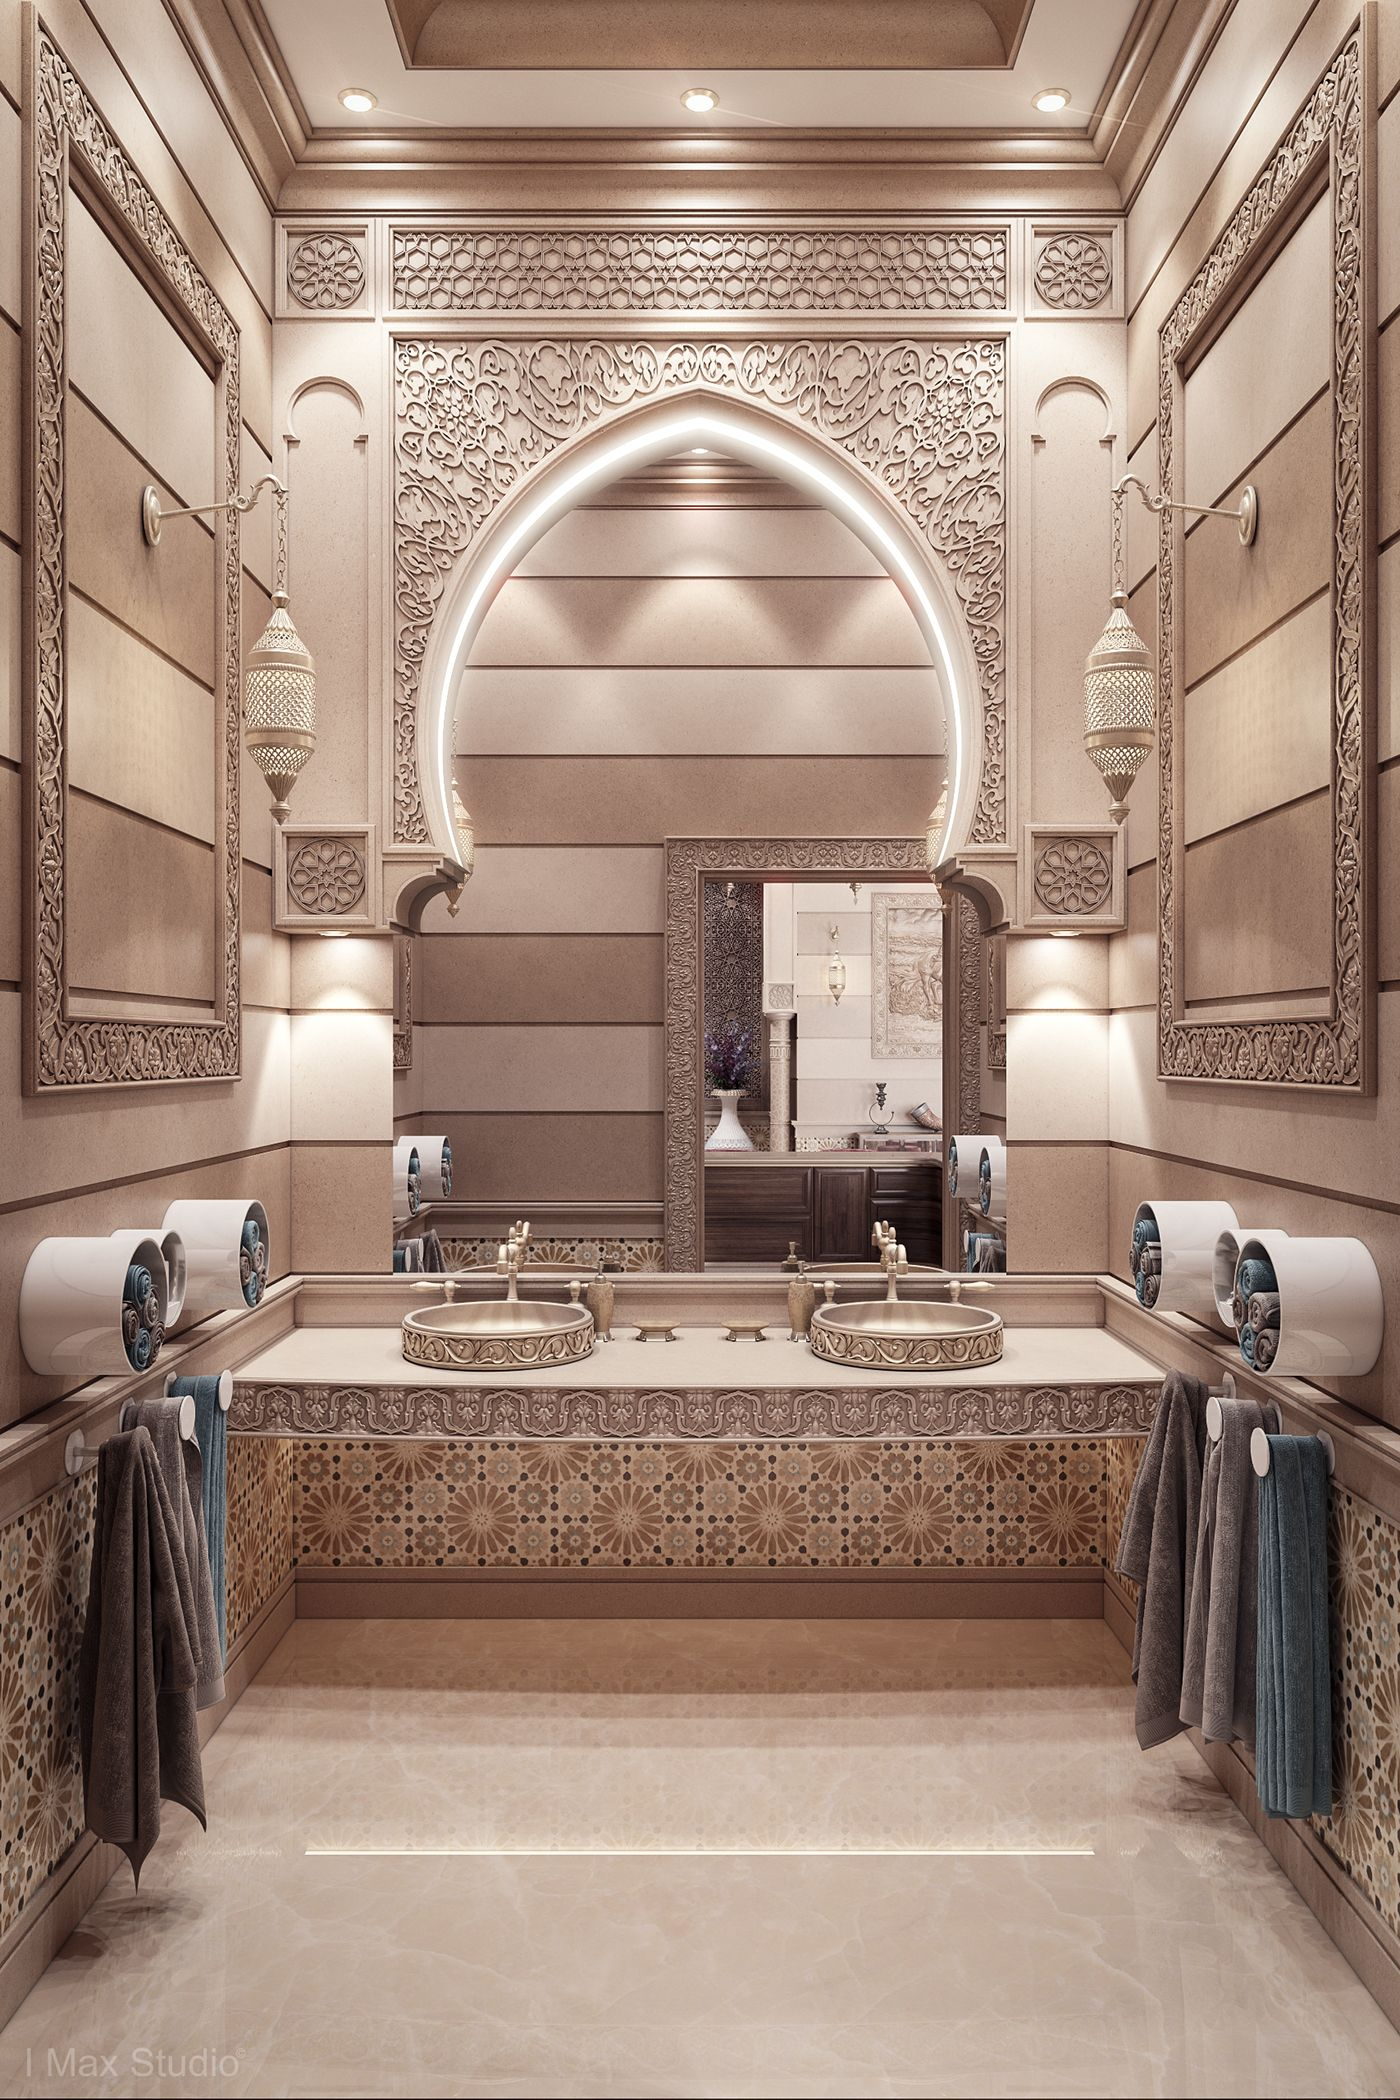 Merveilleux سحر الشرق / Magic Of Orient On Behance Chambres Parentales, Zarzis,  Casablanca Maroc,